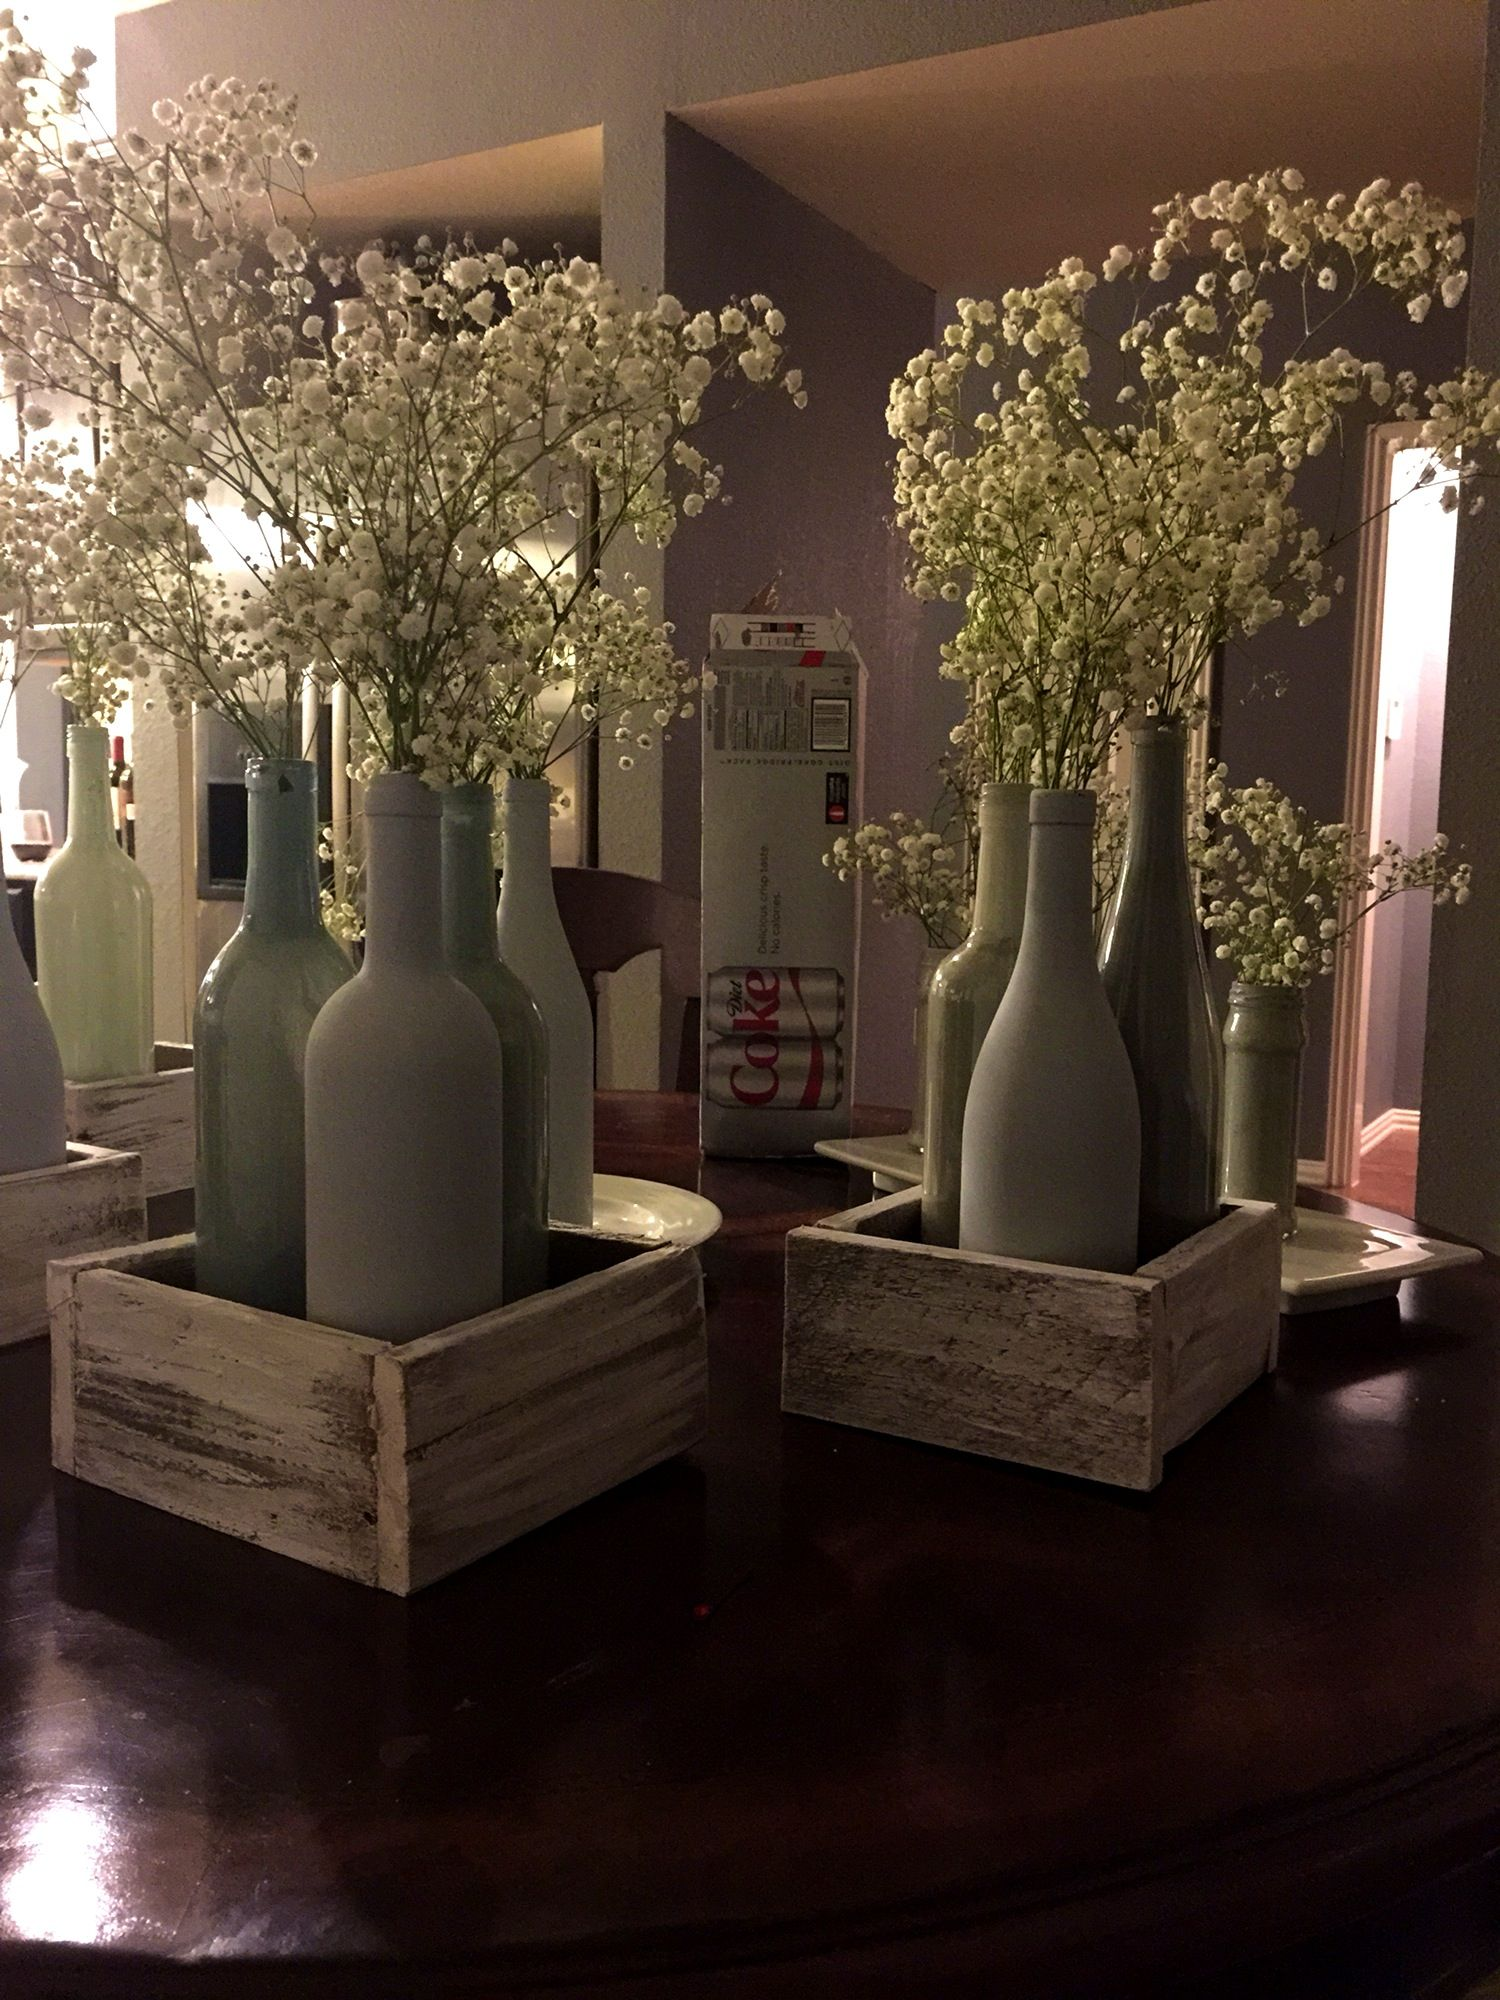 Furniturecomely Decorated Wine Bottles Xmas Bottle Centerpieces For